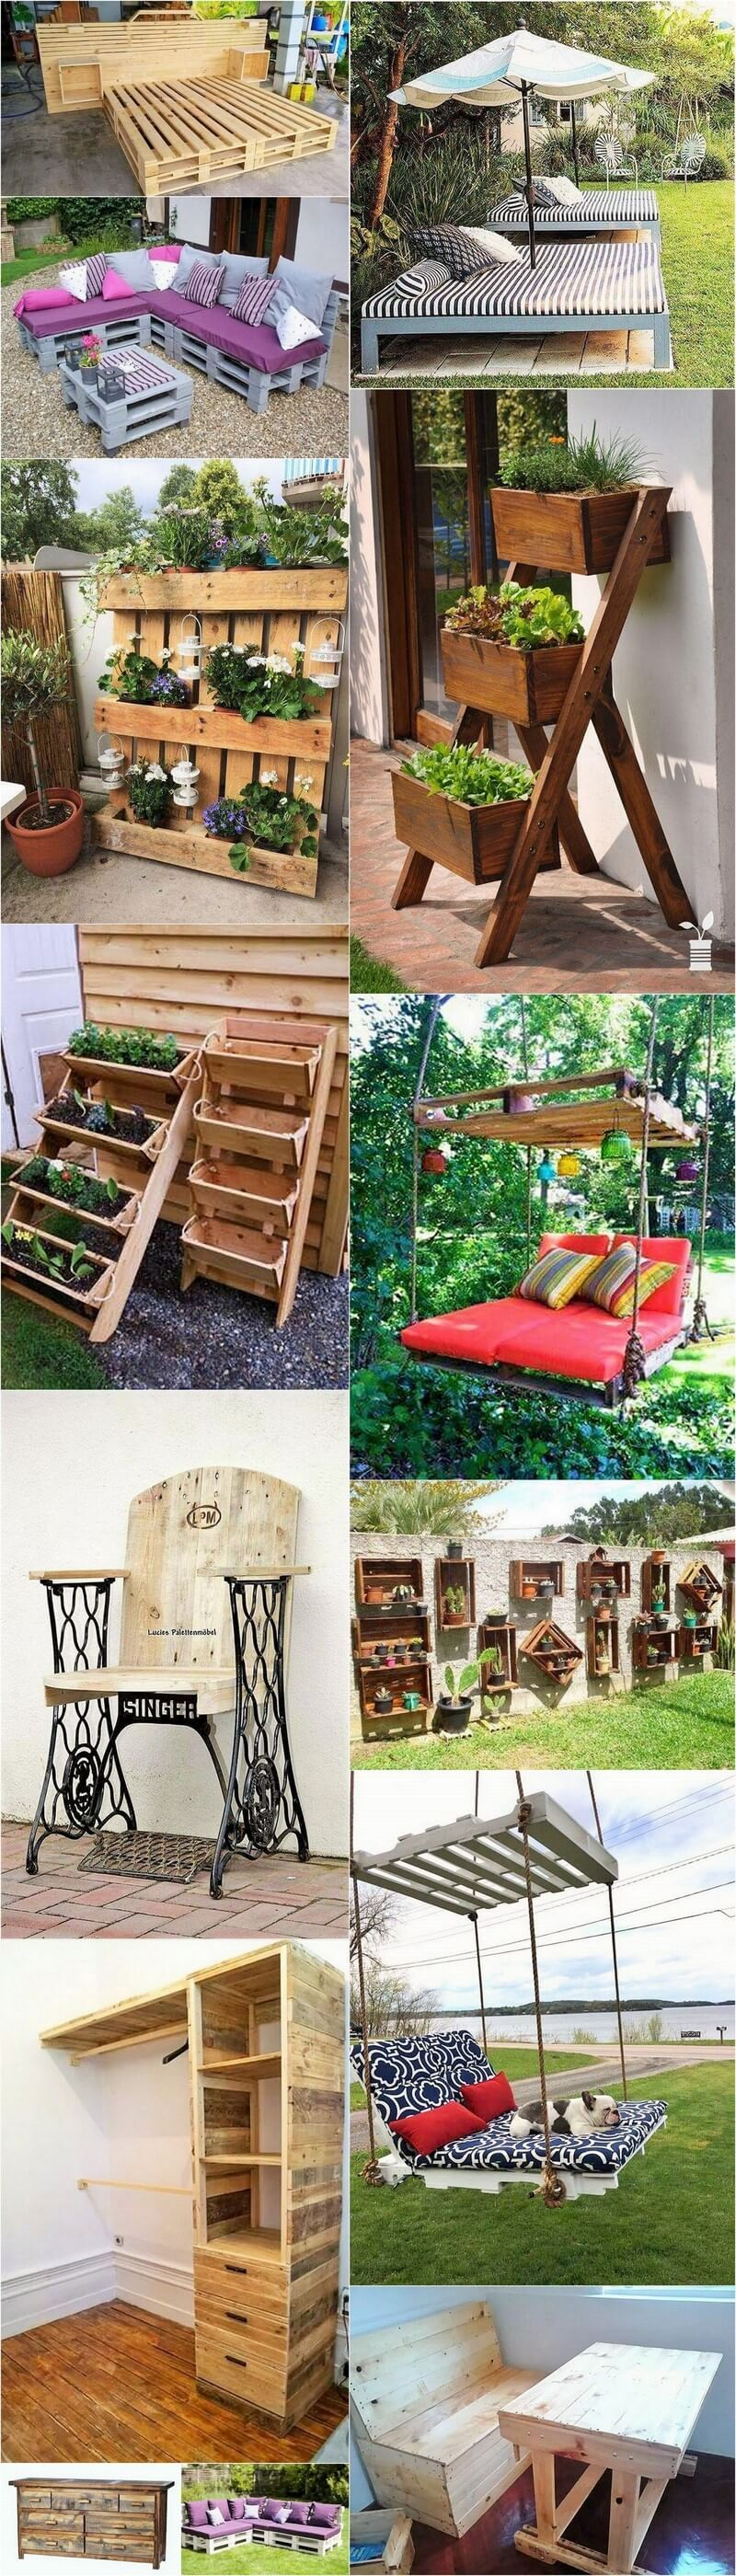 DIY Must Try Ideas From The Wooden Pallet